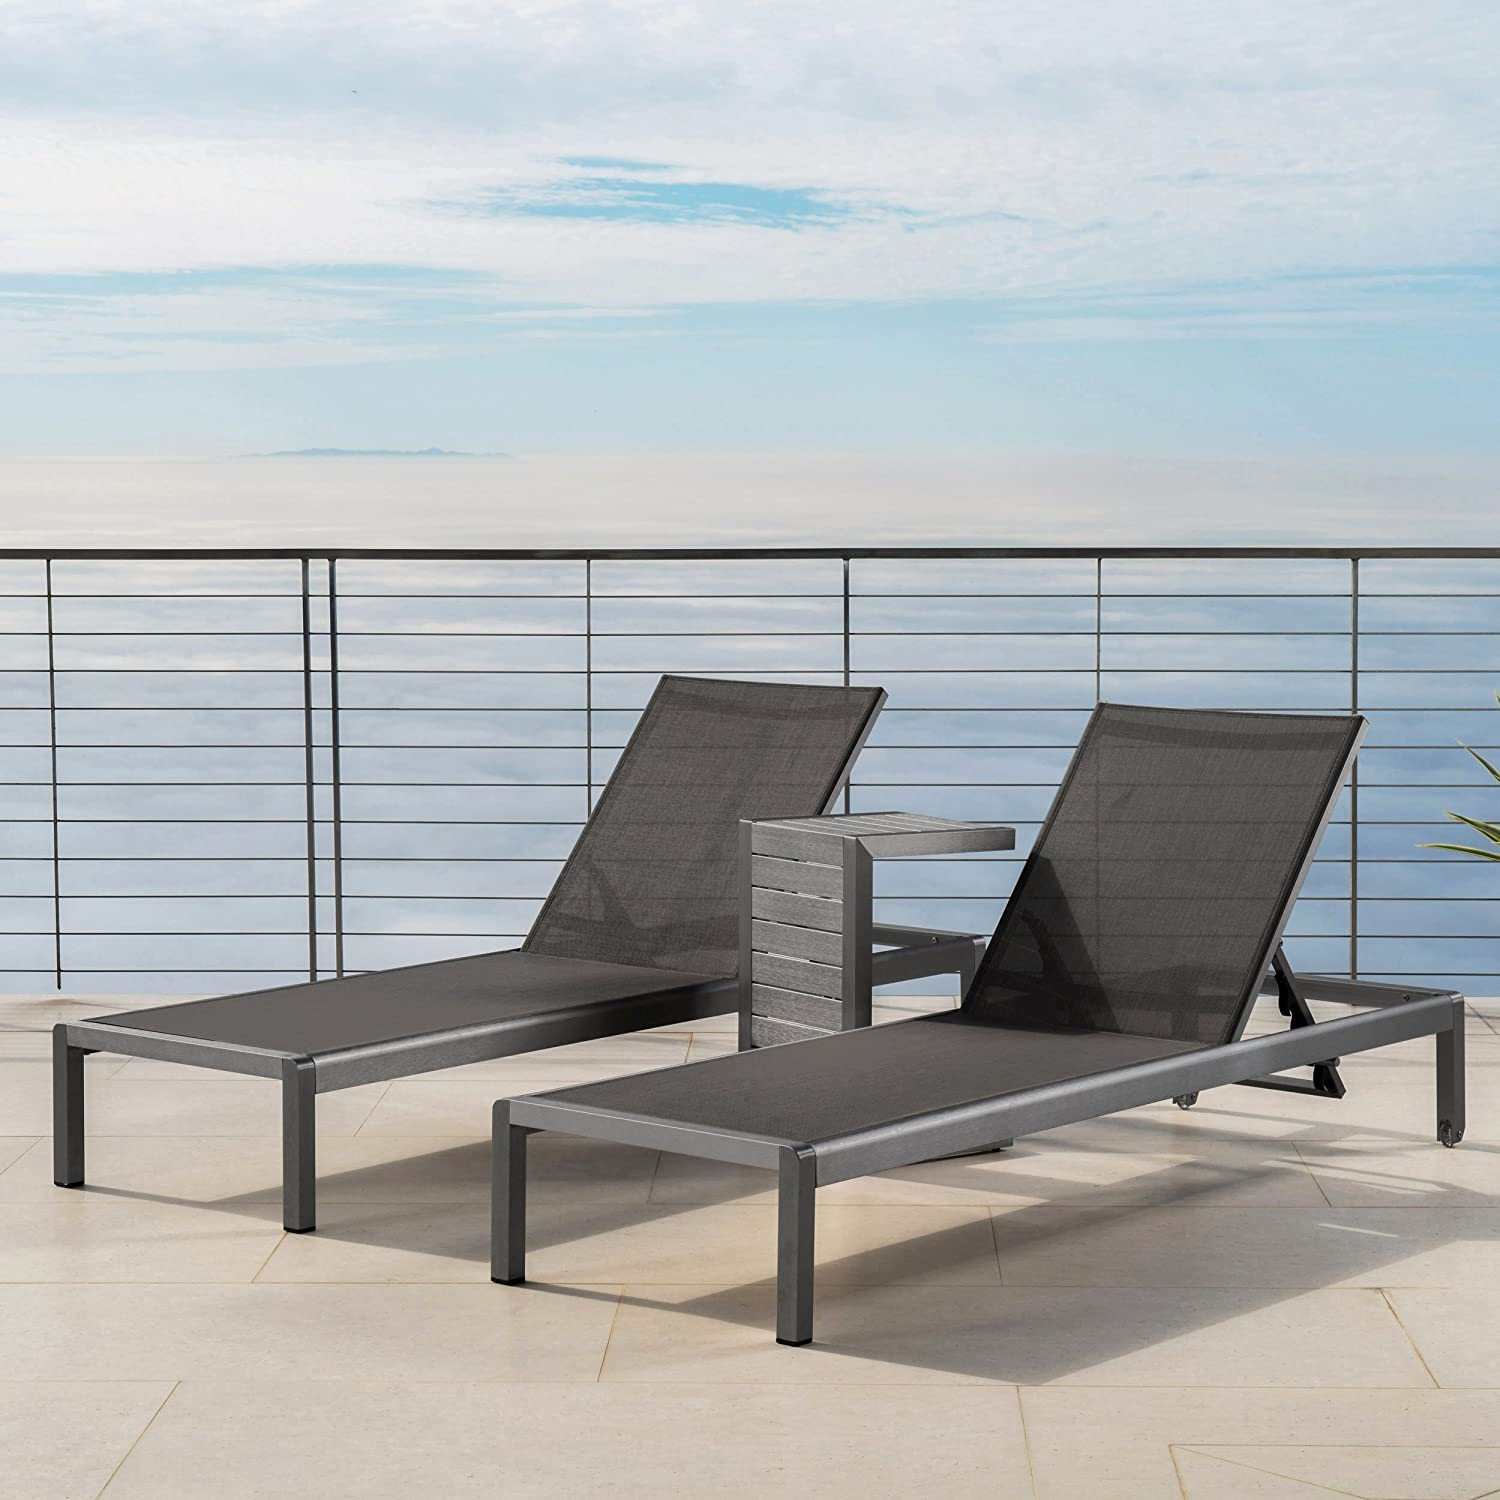 Christopher Knight Home 301807 Coral Bay Outdoor Grey Aluminum Chaise Lounge and C-Shaped Side Table, Dark